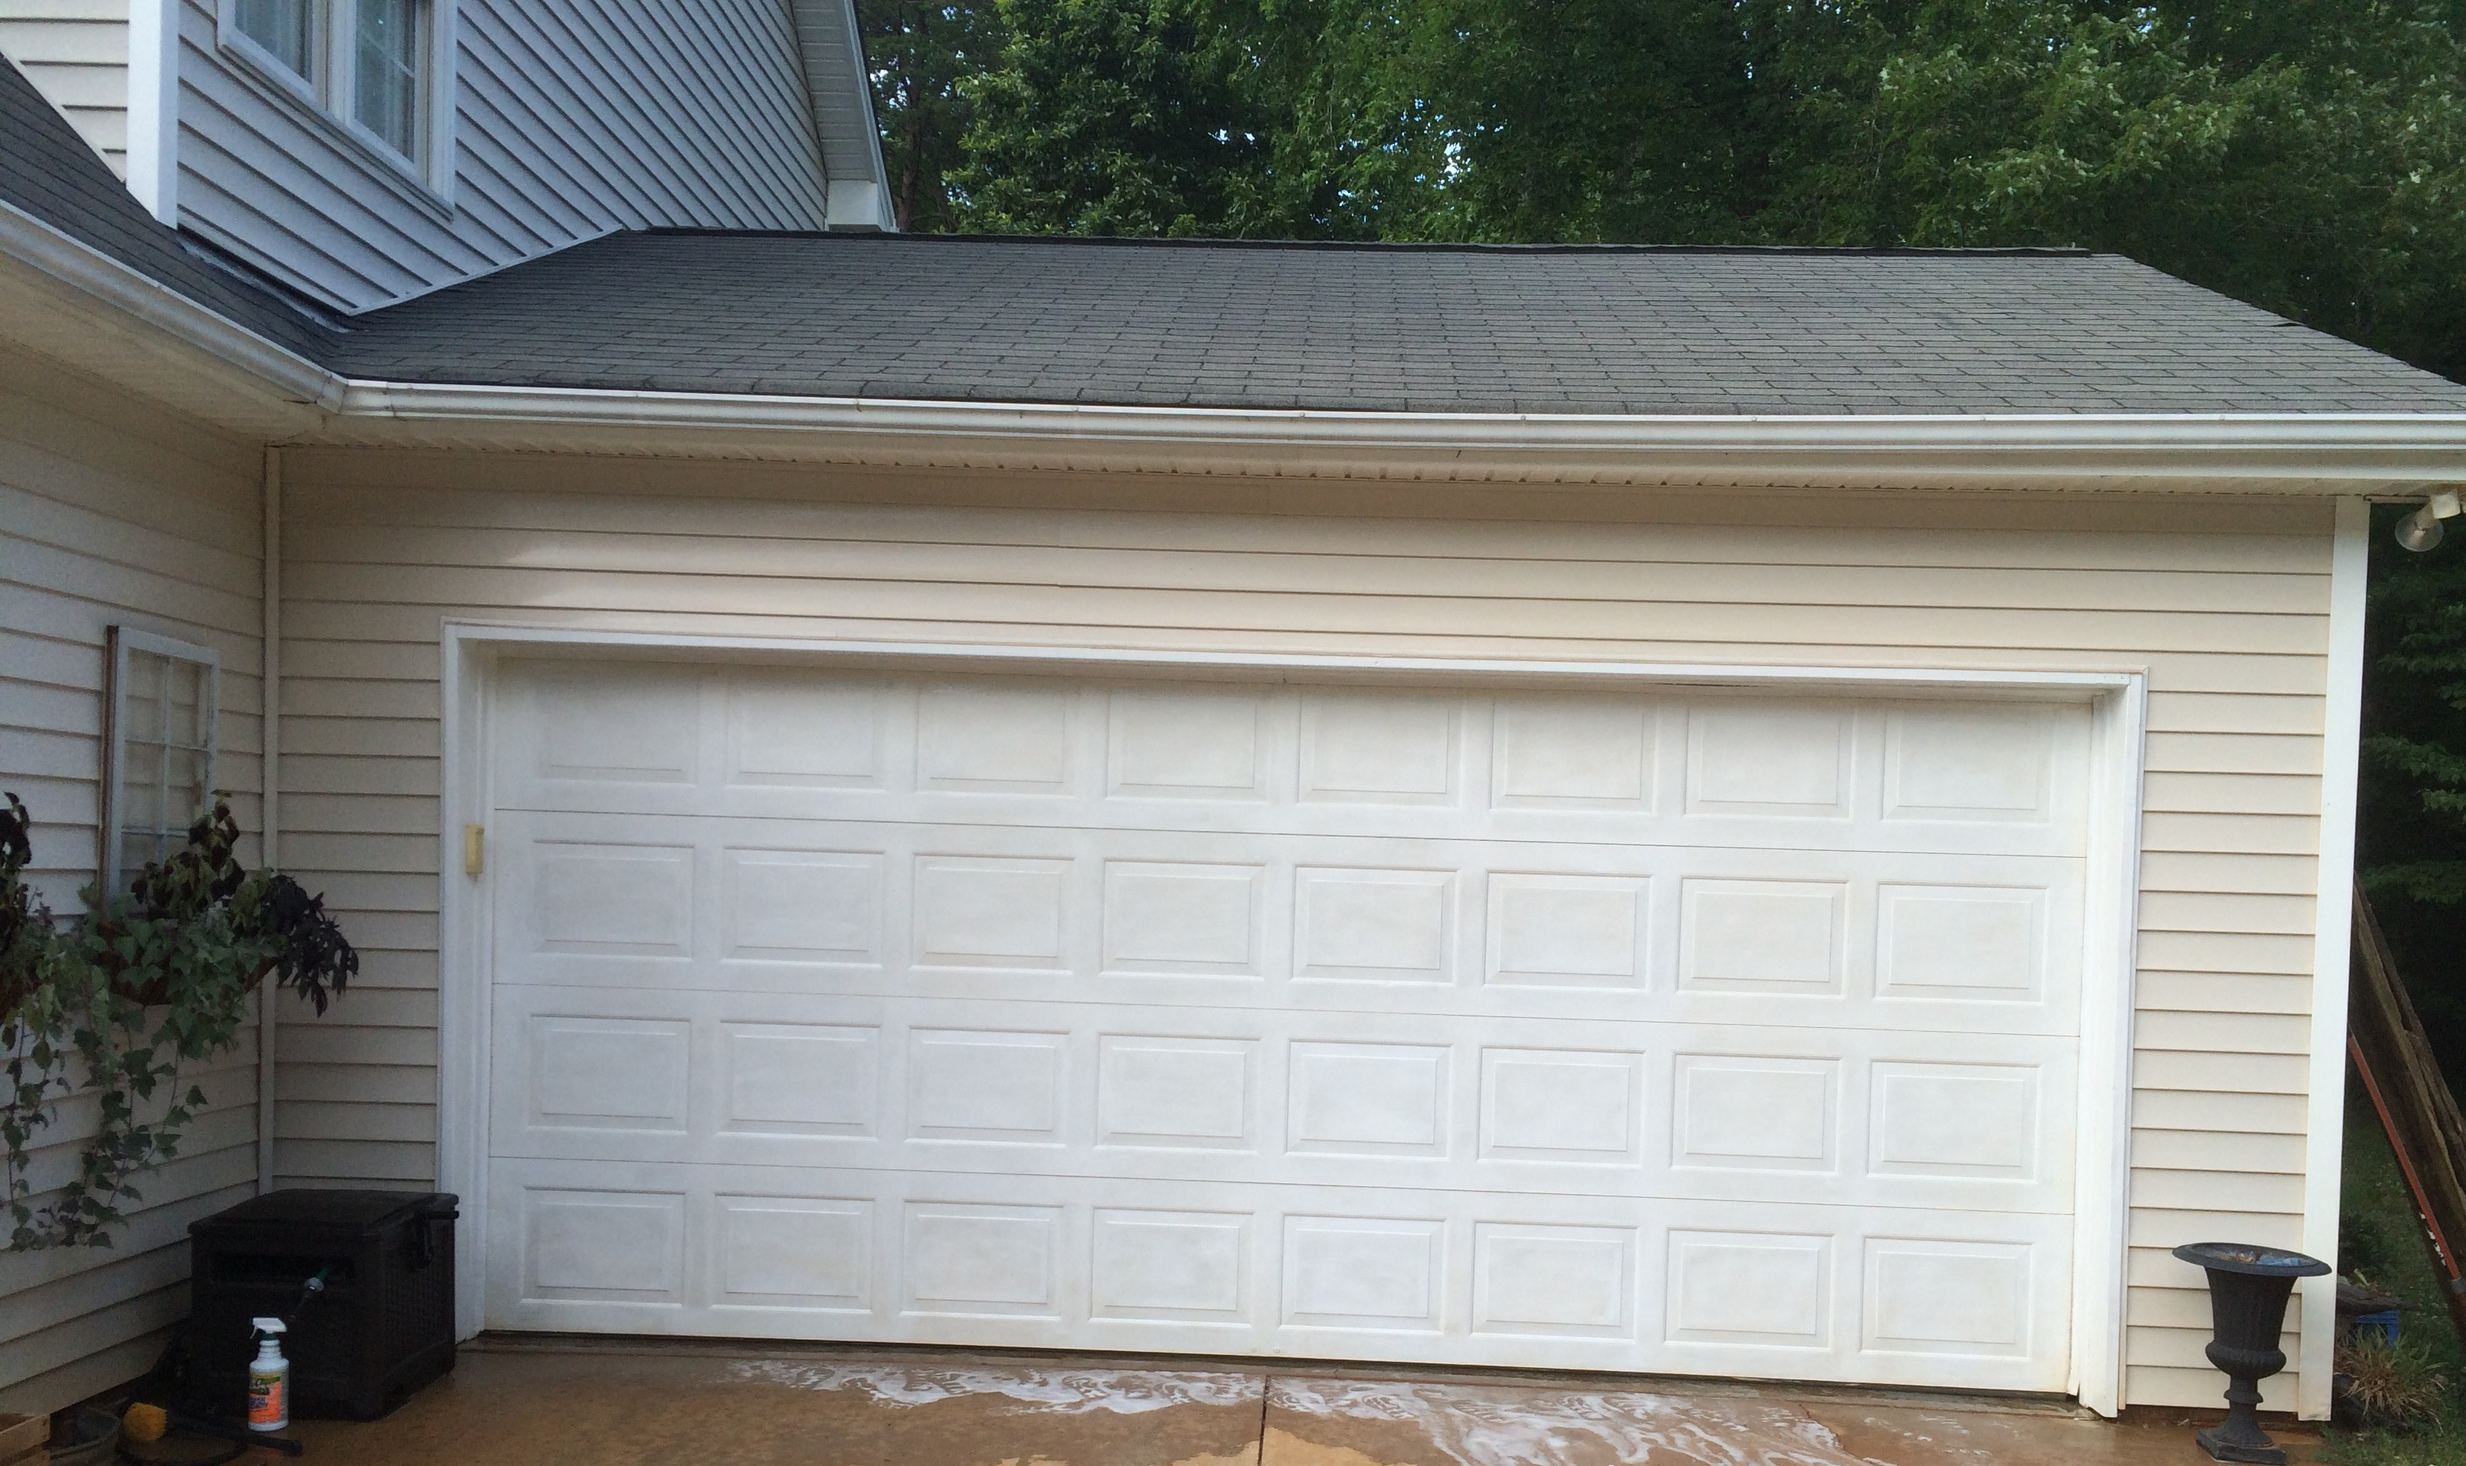 Faux Carriage Style Garage Doors- Before